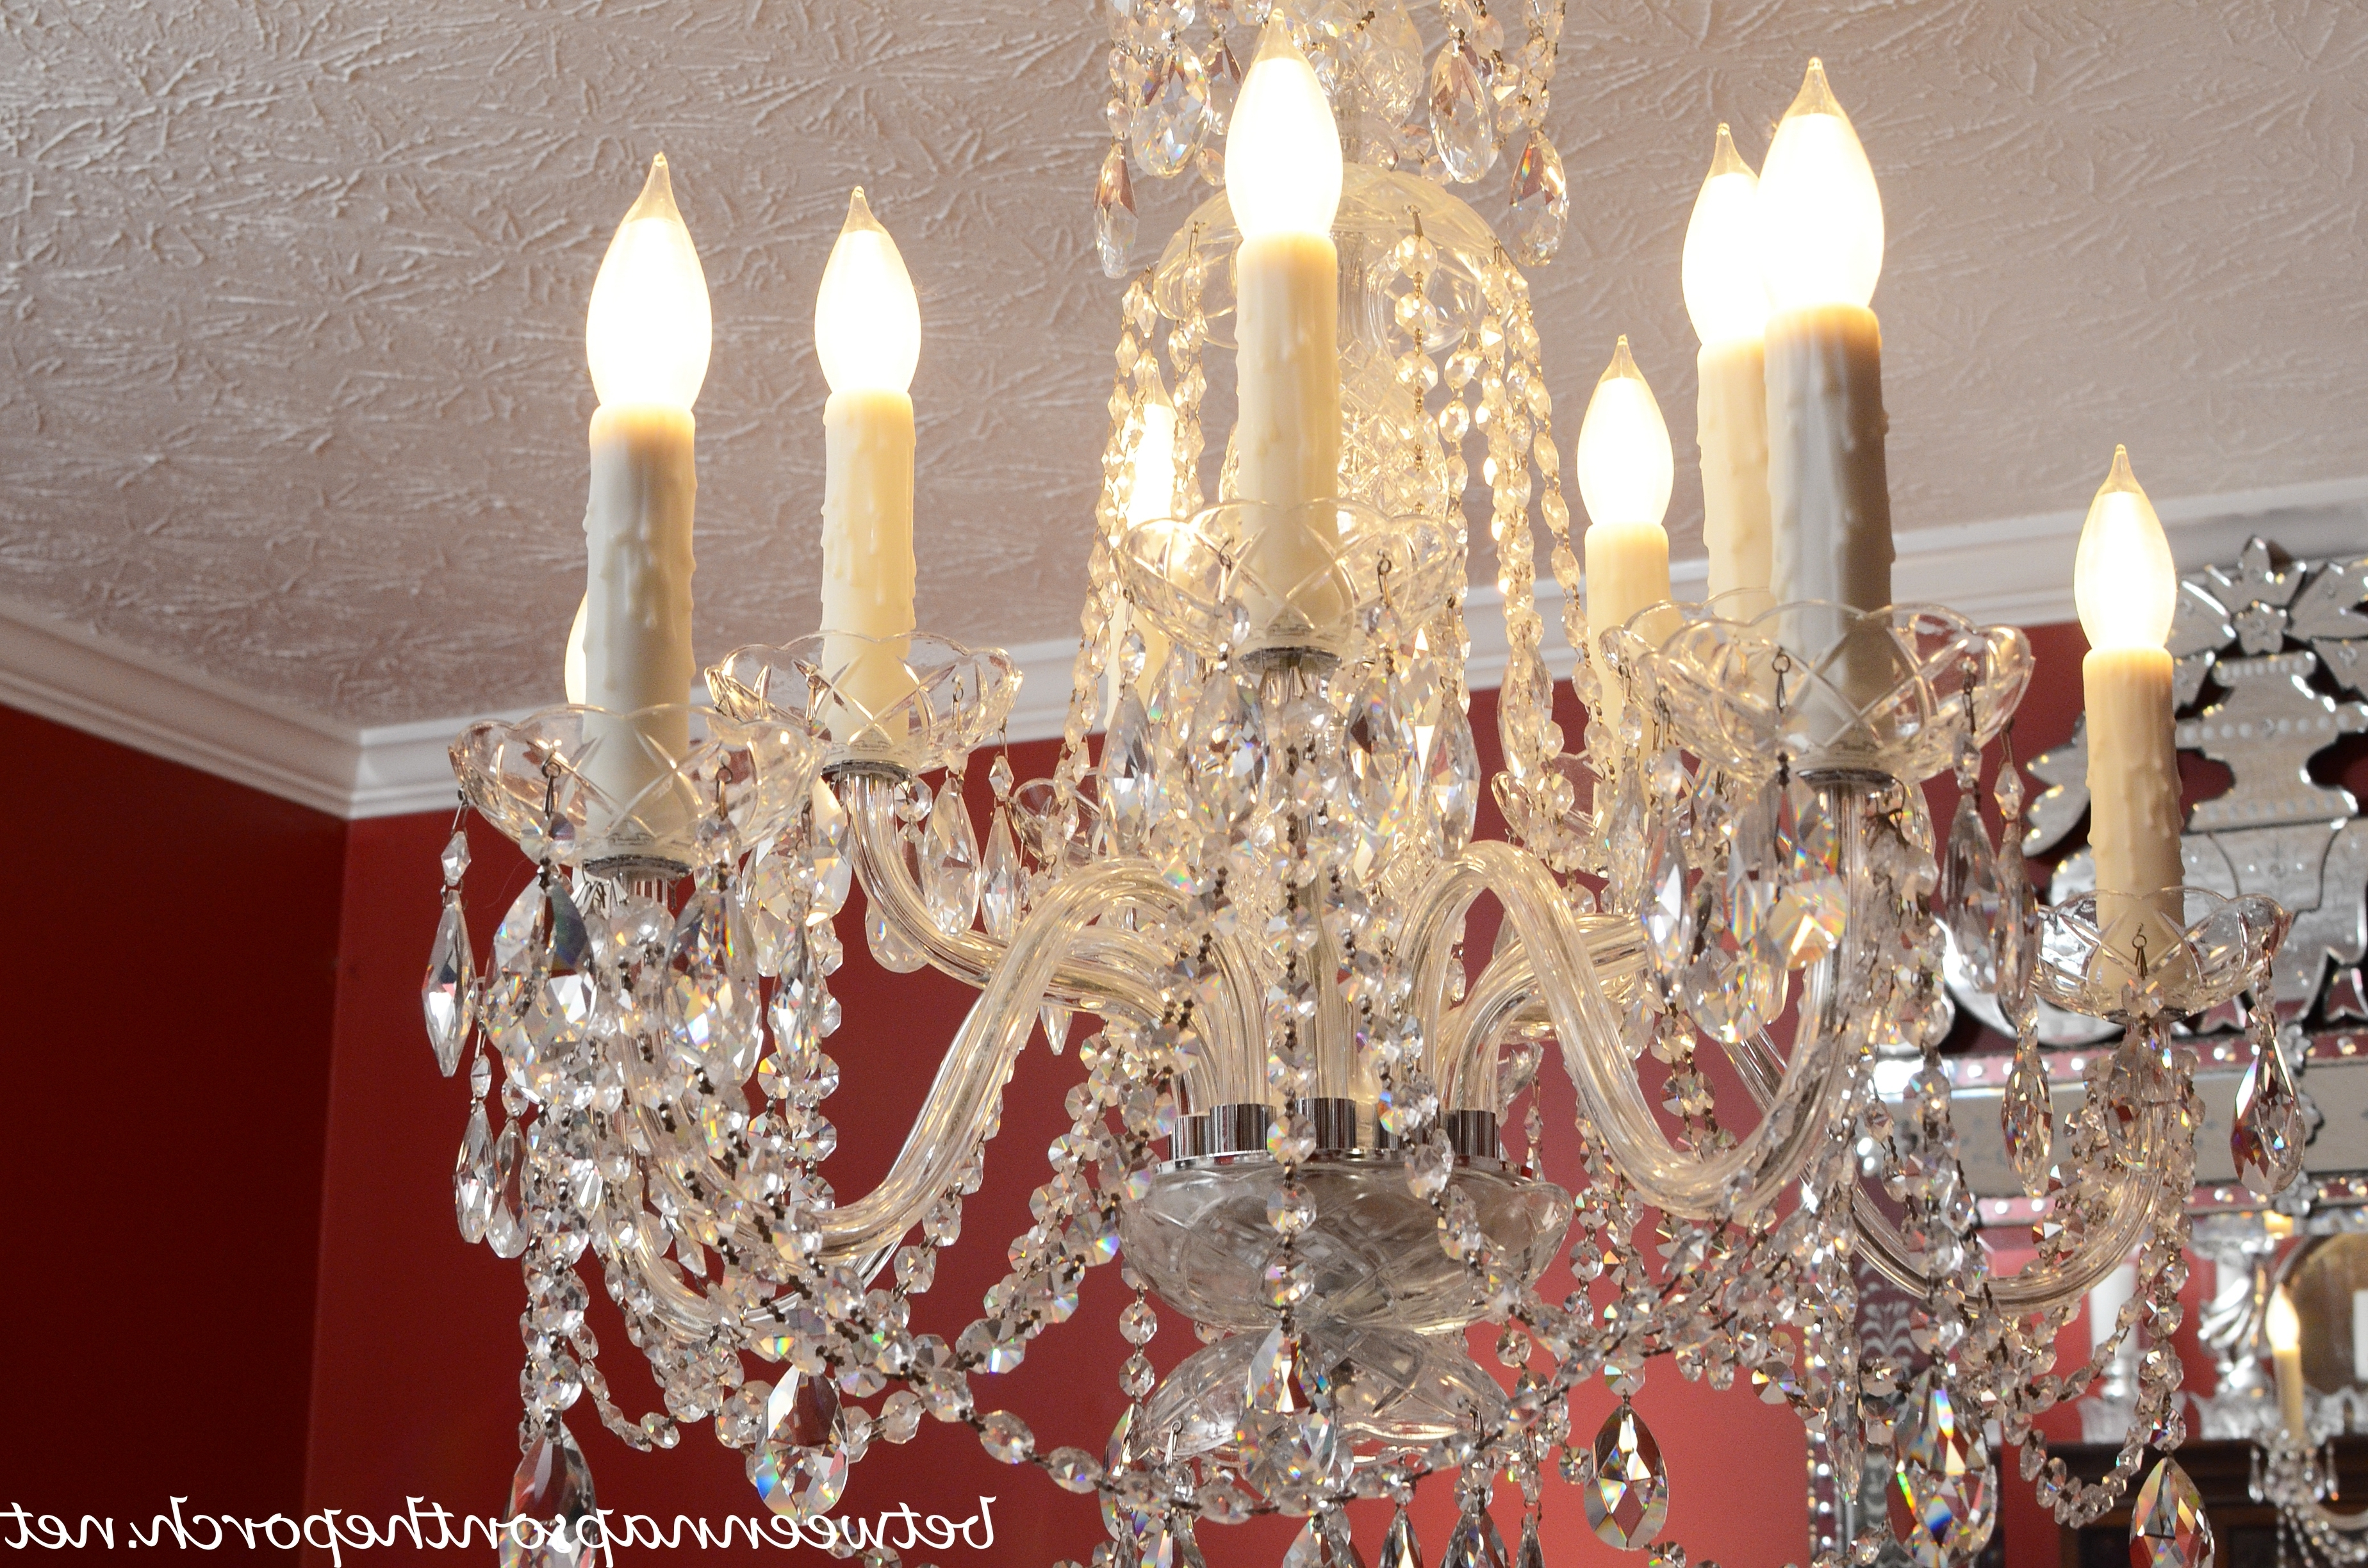 Metal Ball Chandeliers Regarding Favorite Chandeliers Design : Wonderful Candle Style Chandelier Small (View 9 of 15)